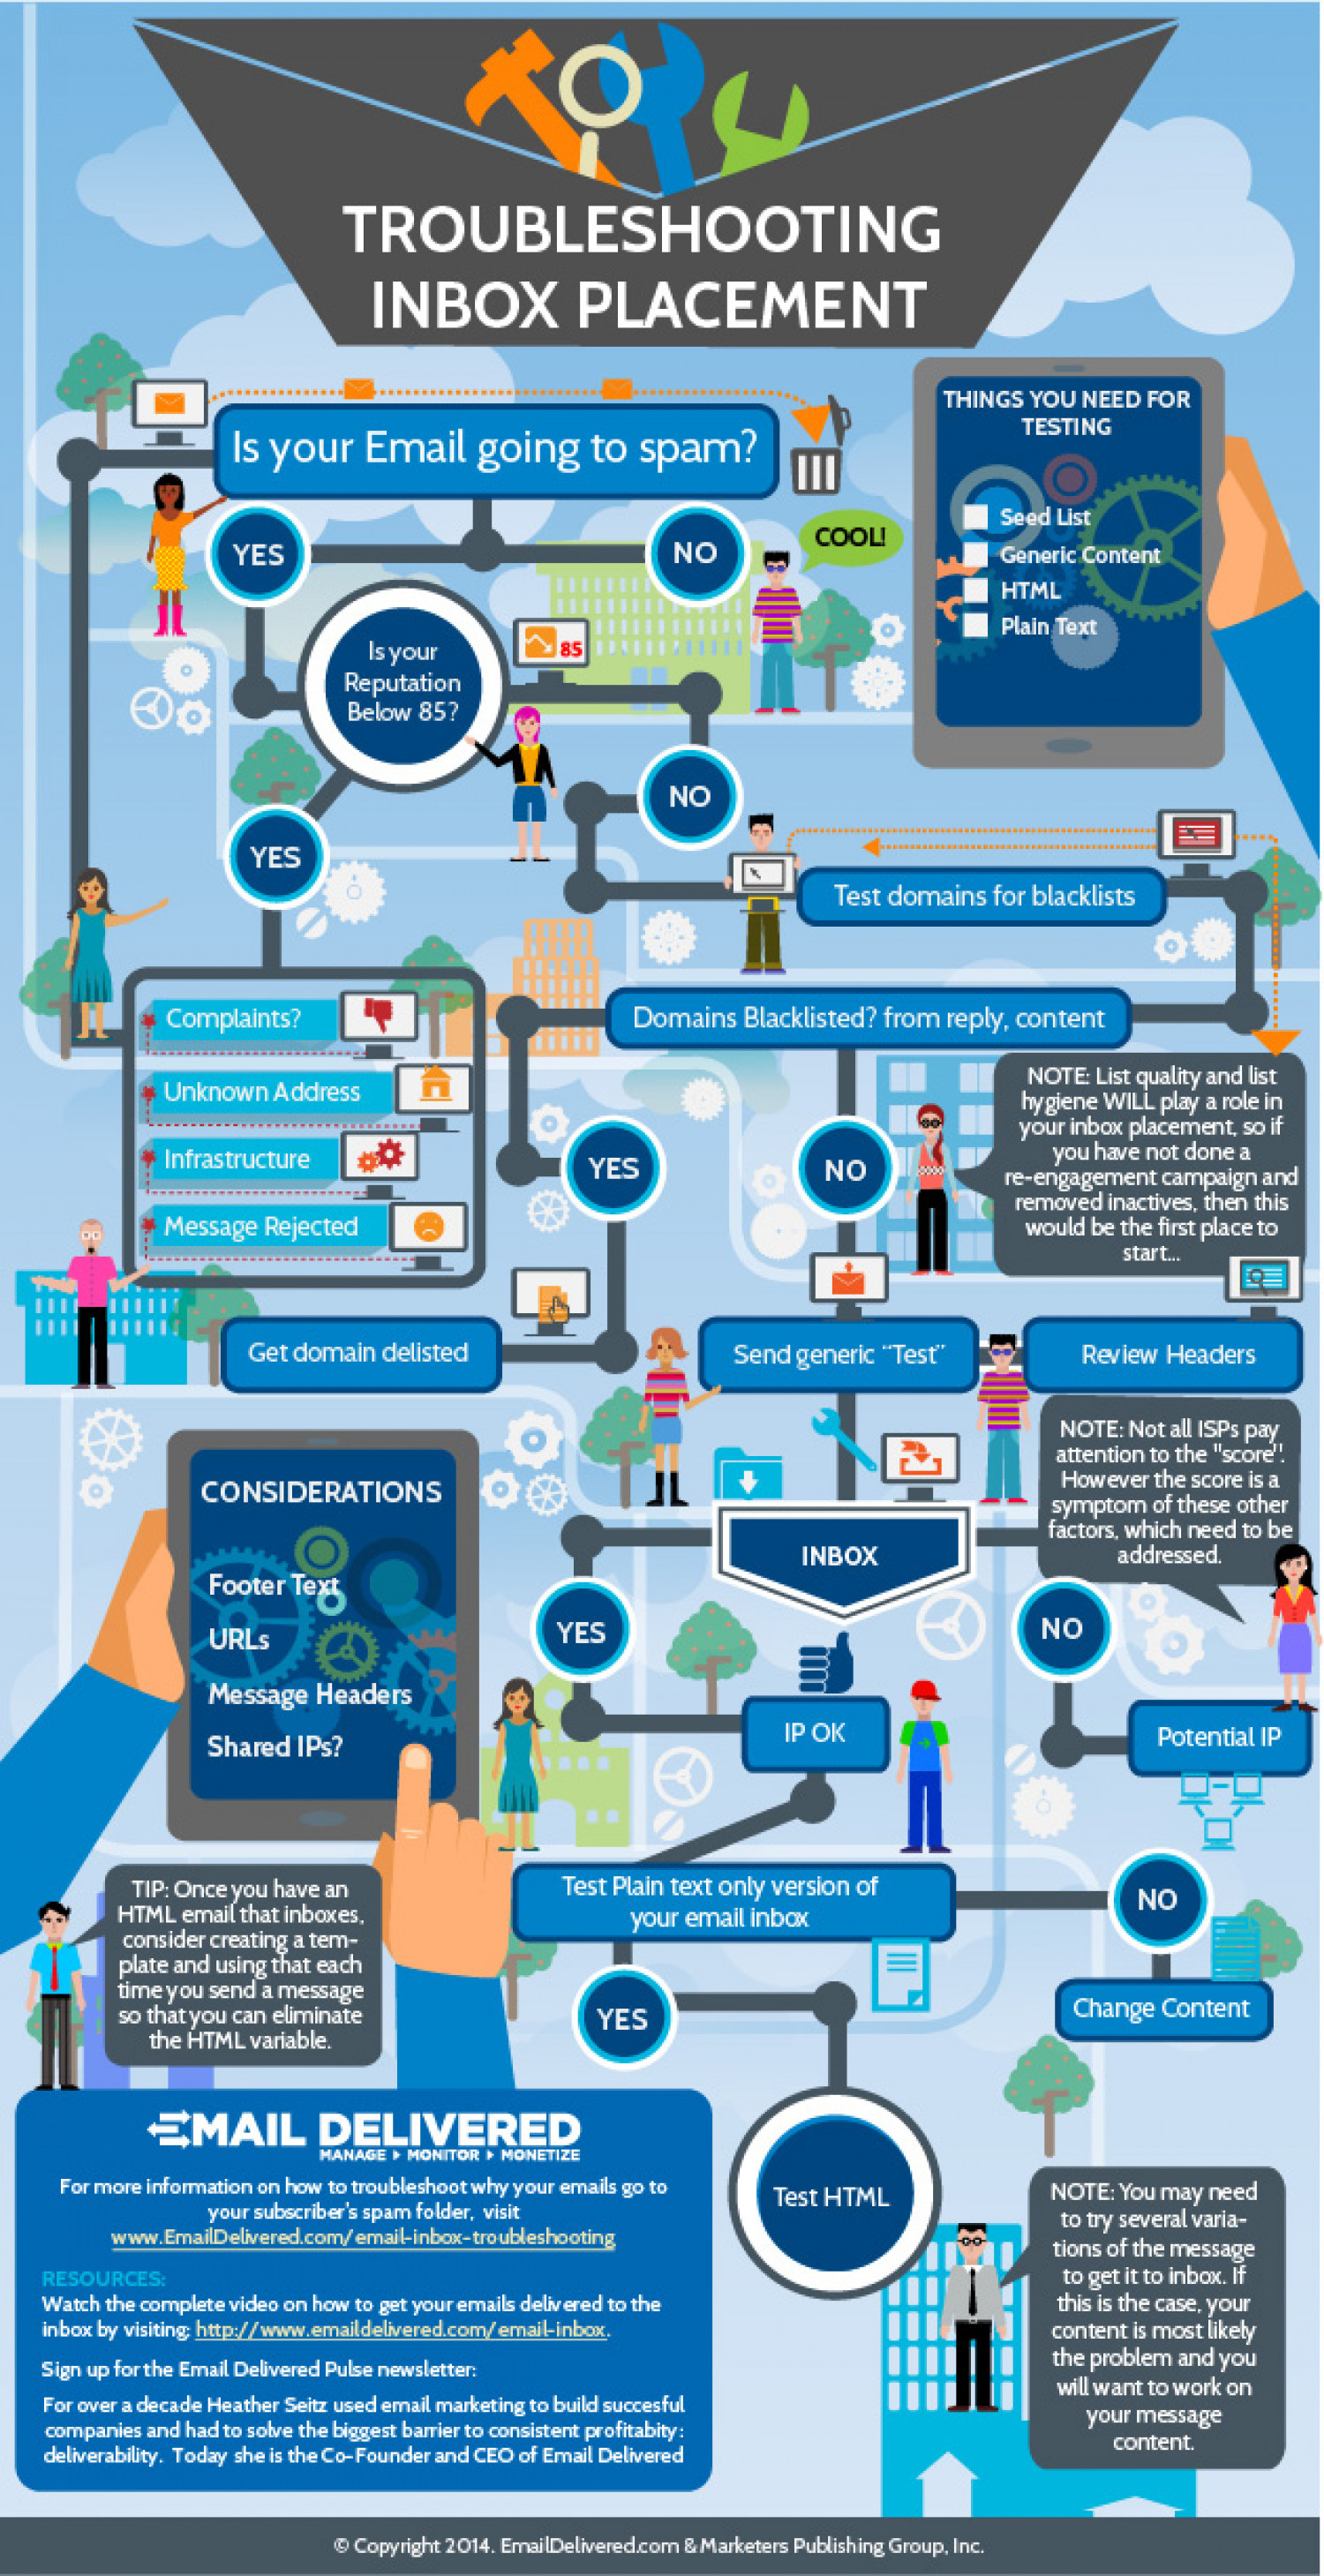 Troubleshooting Inbox Placement Infographic